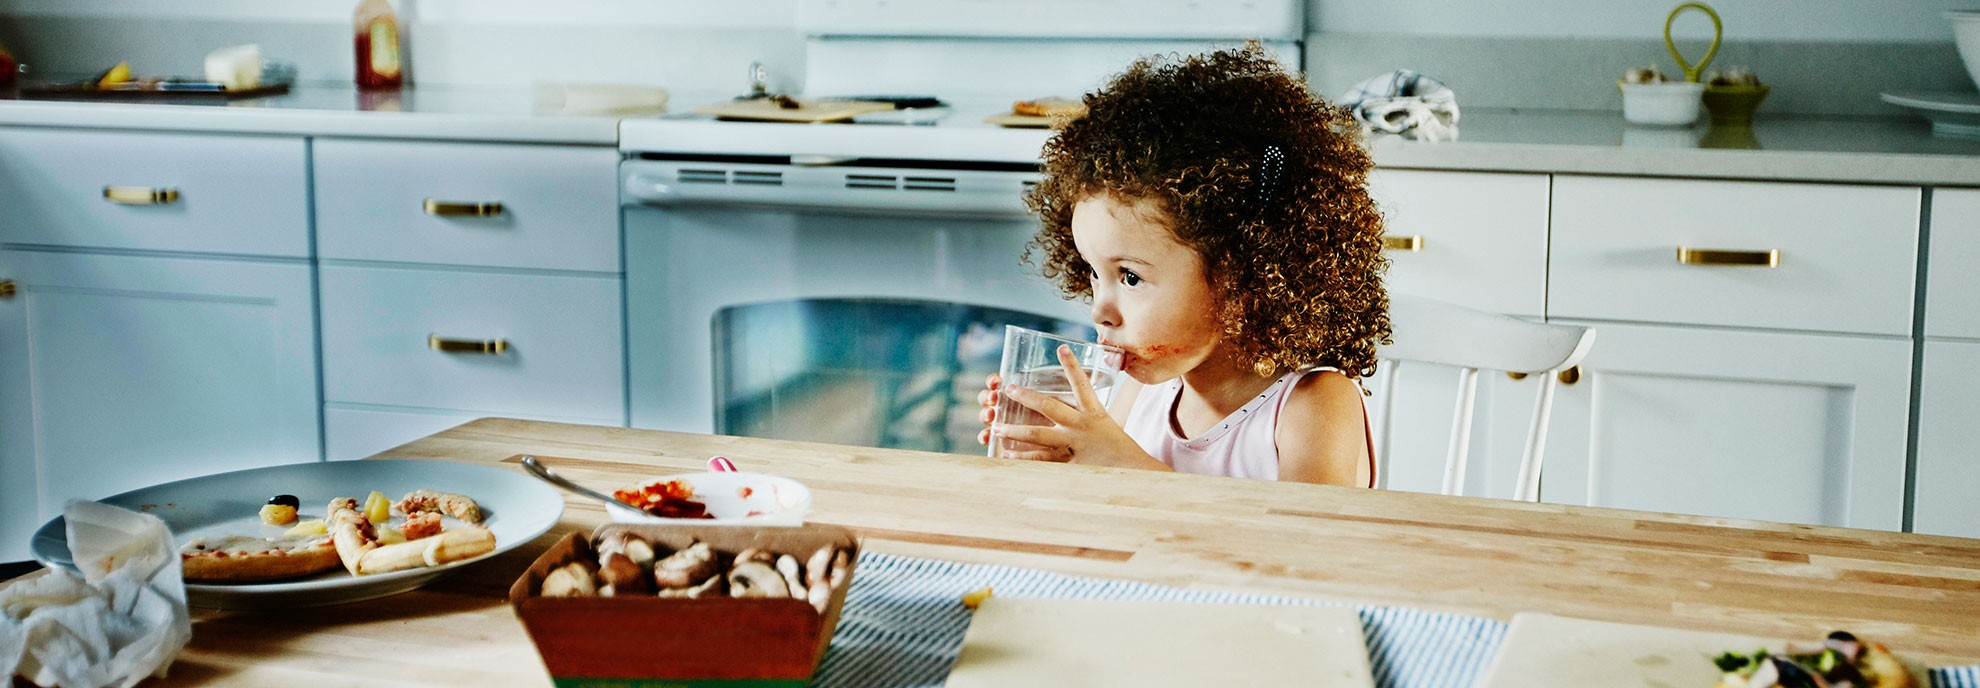 A young girl drinks a glass of water during snack time.